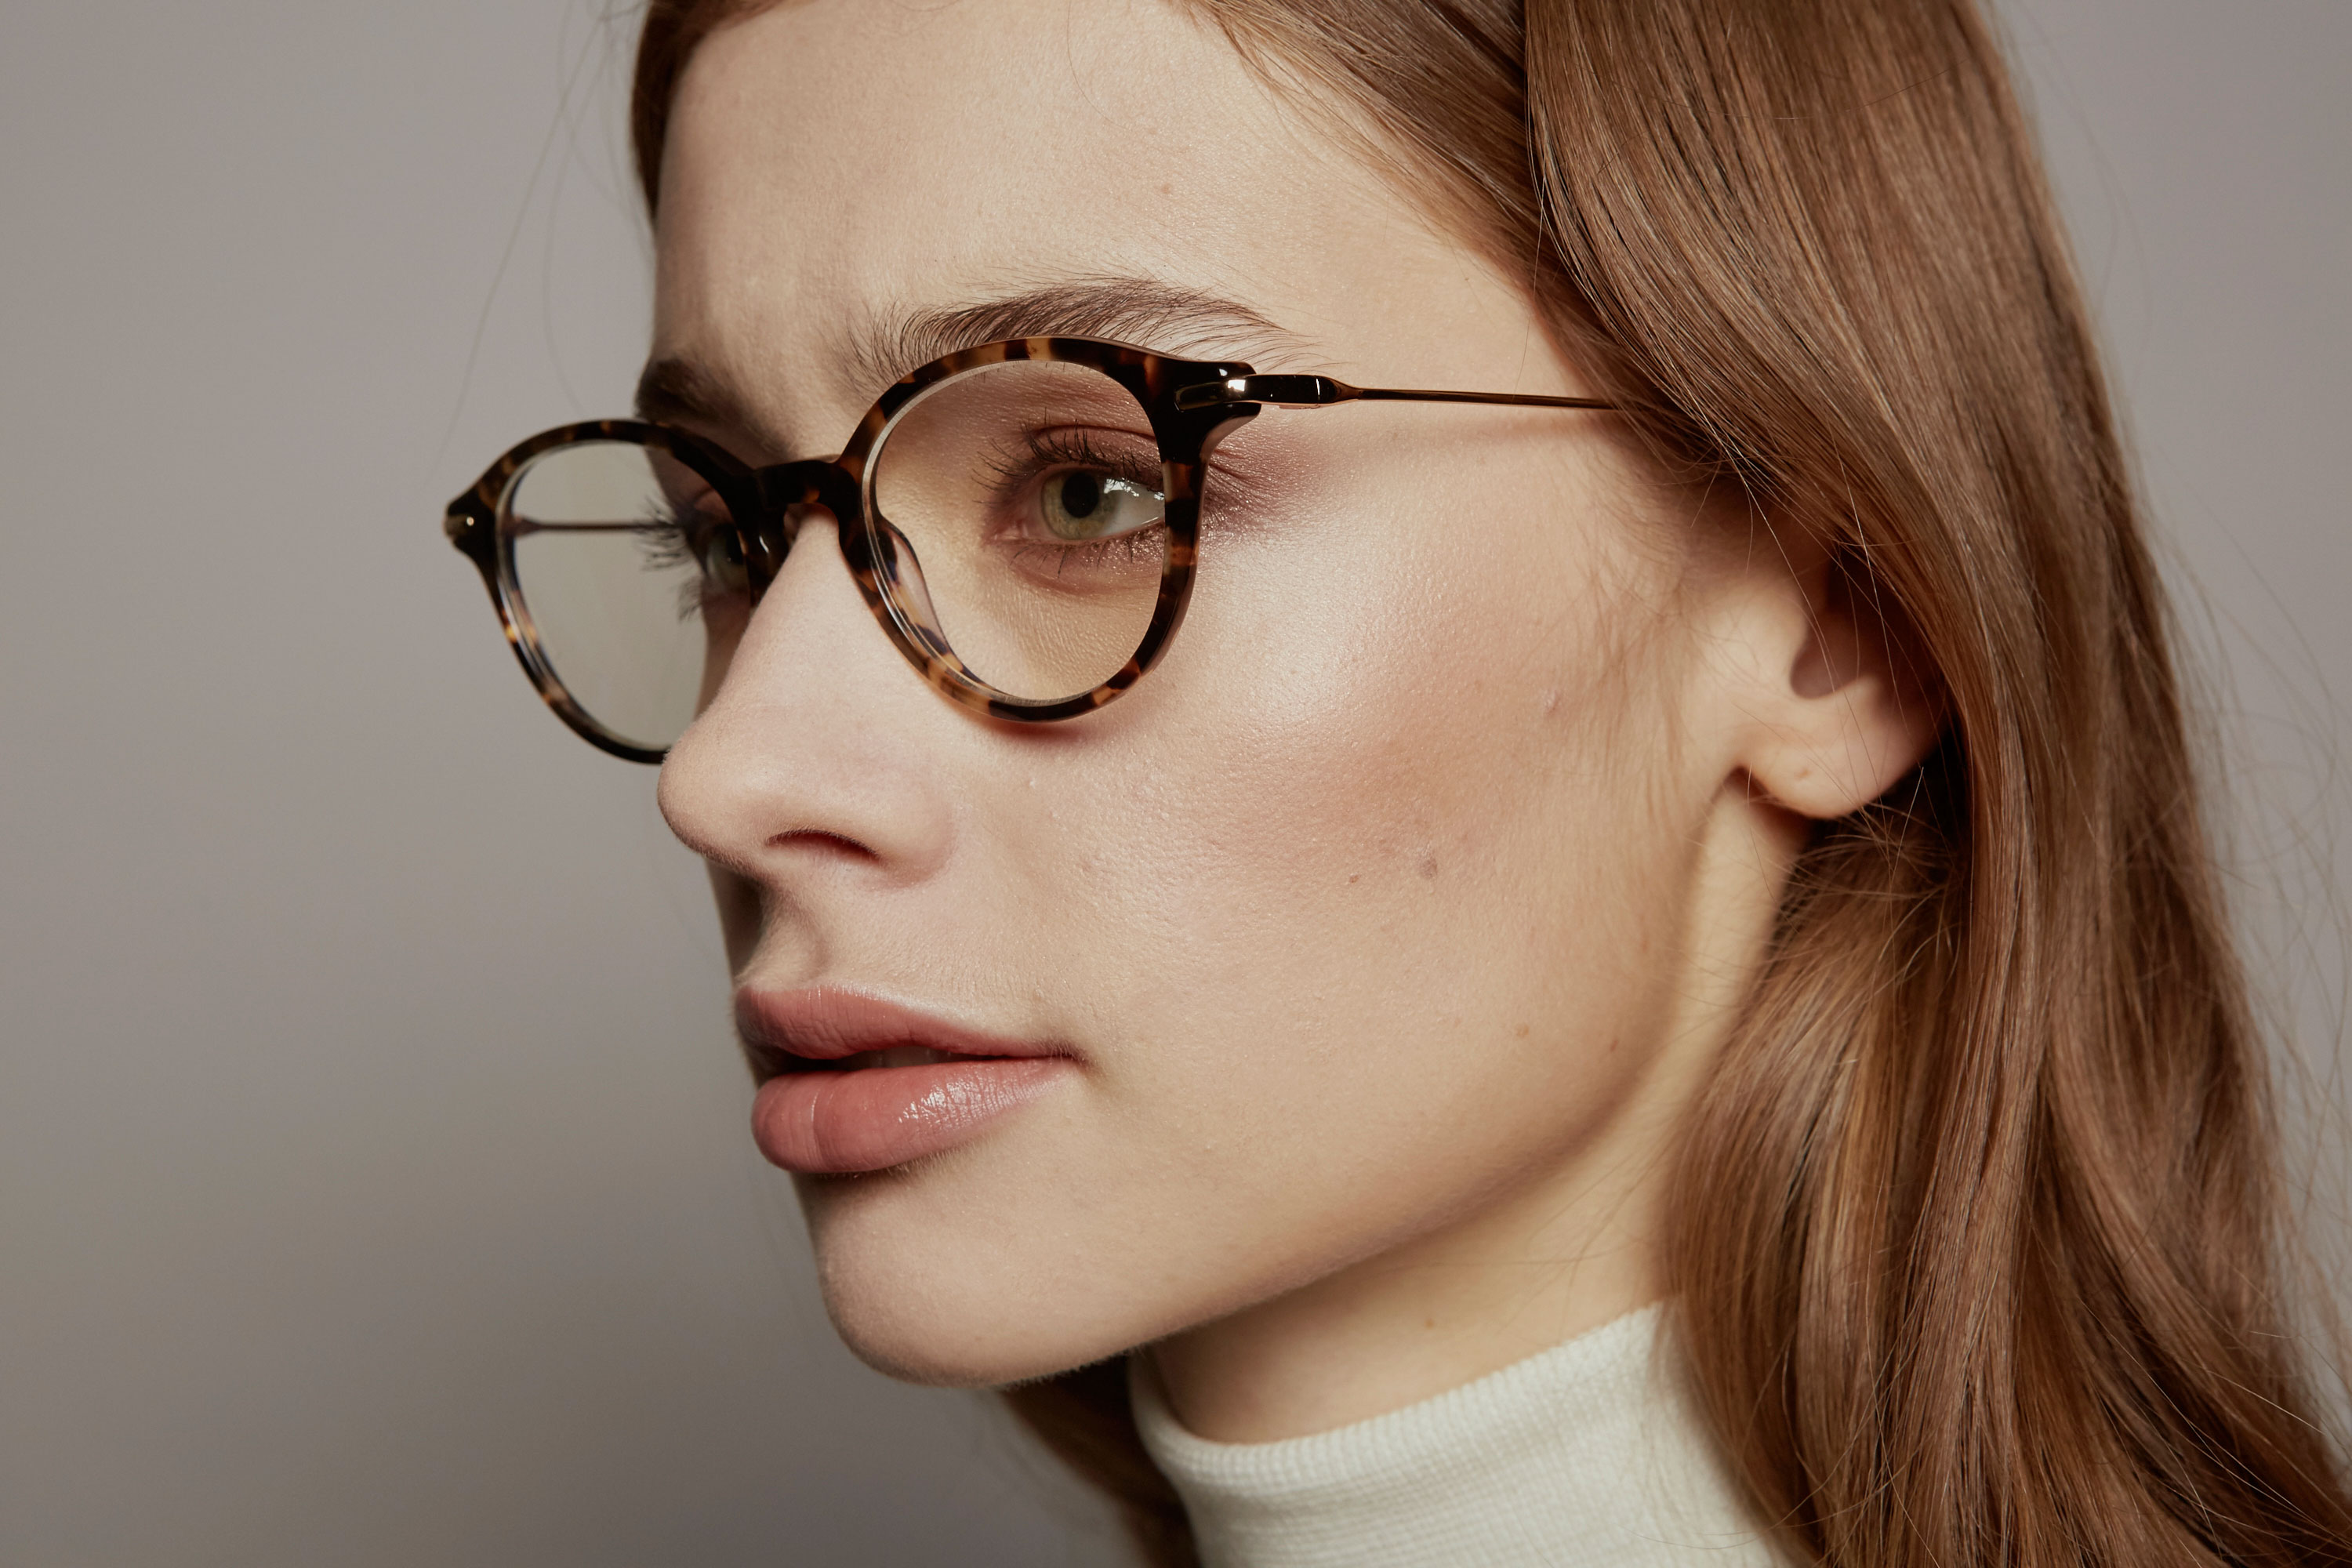 Amsterdam acetate rounded brown sunglasses by GIGI Studios